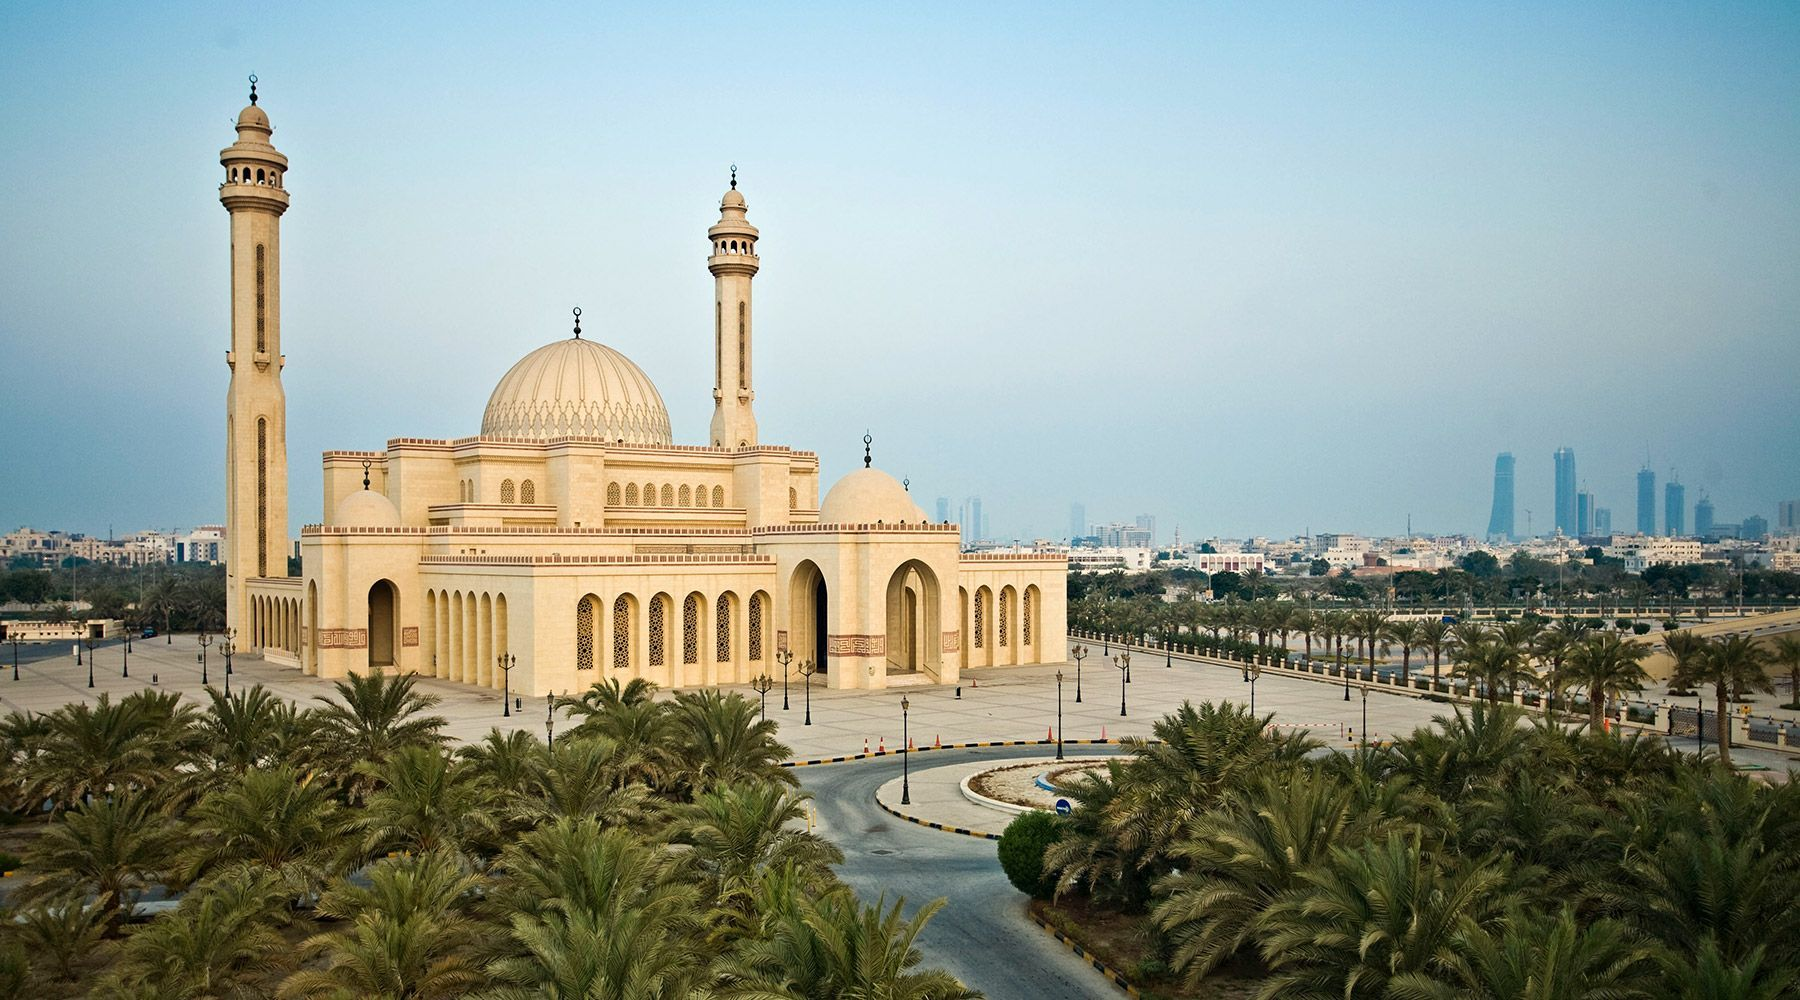 Al Fateh Mosque in Bahrain